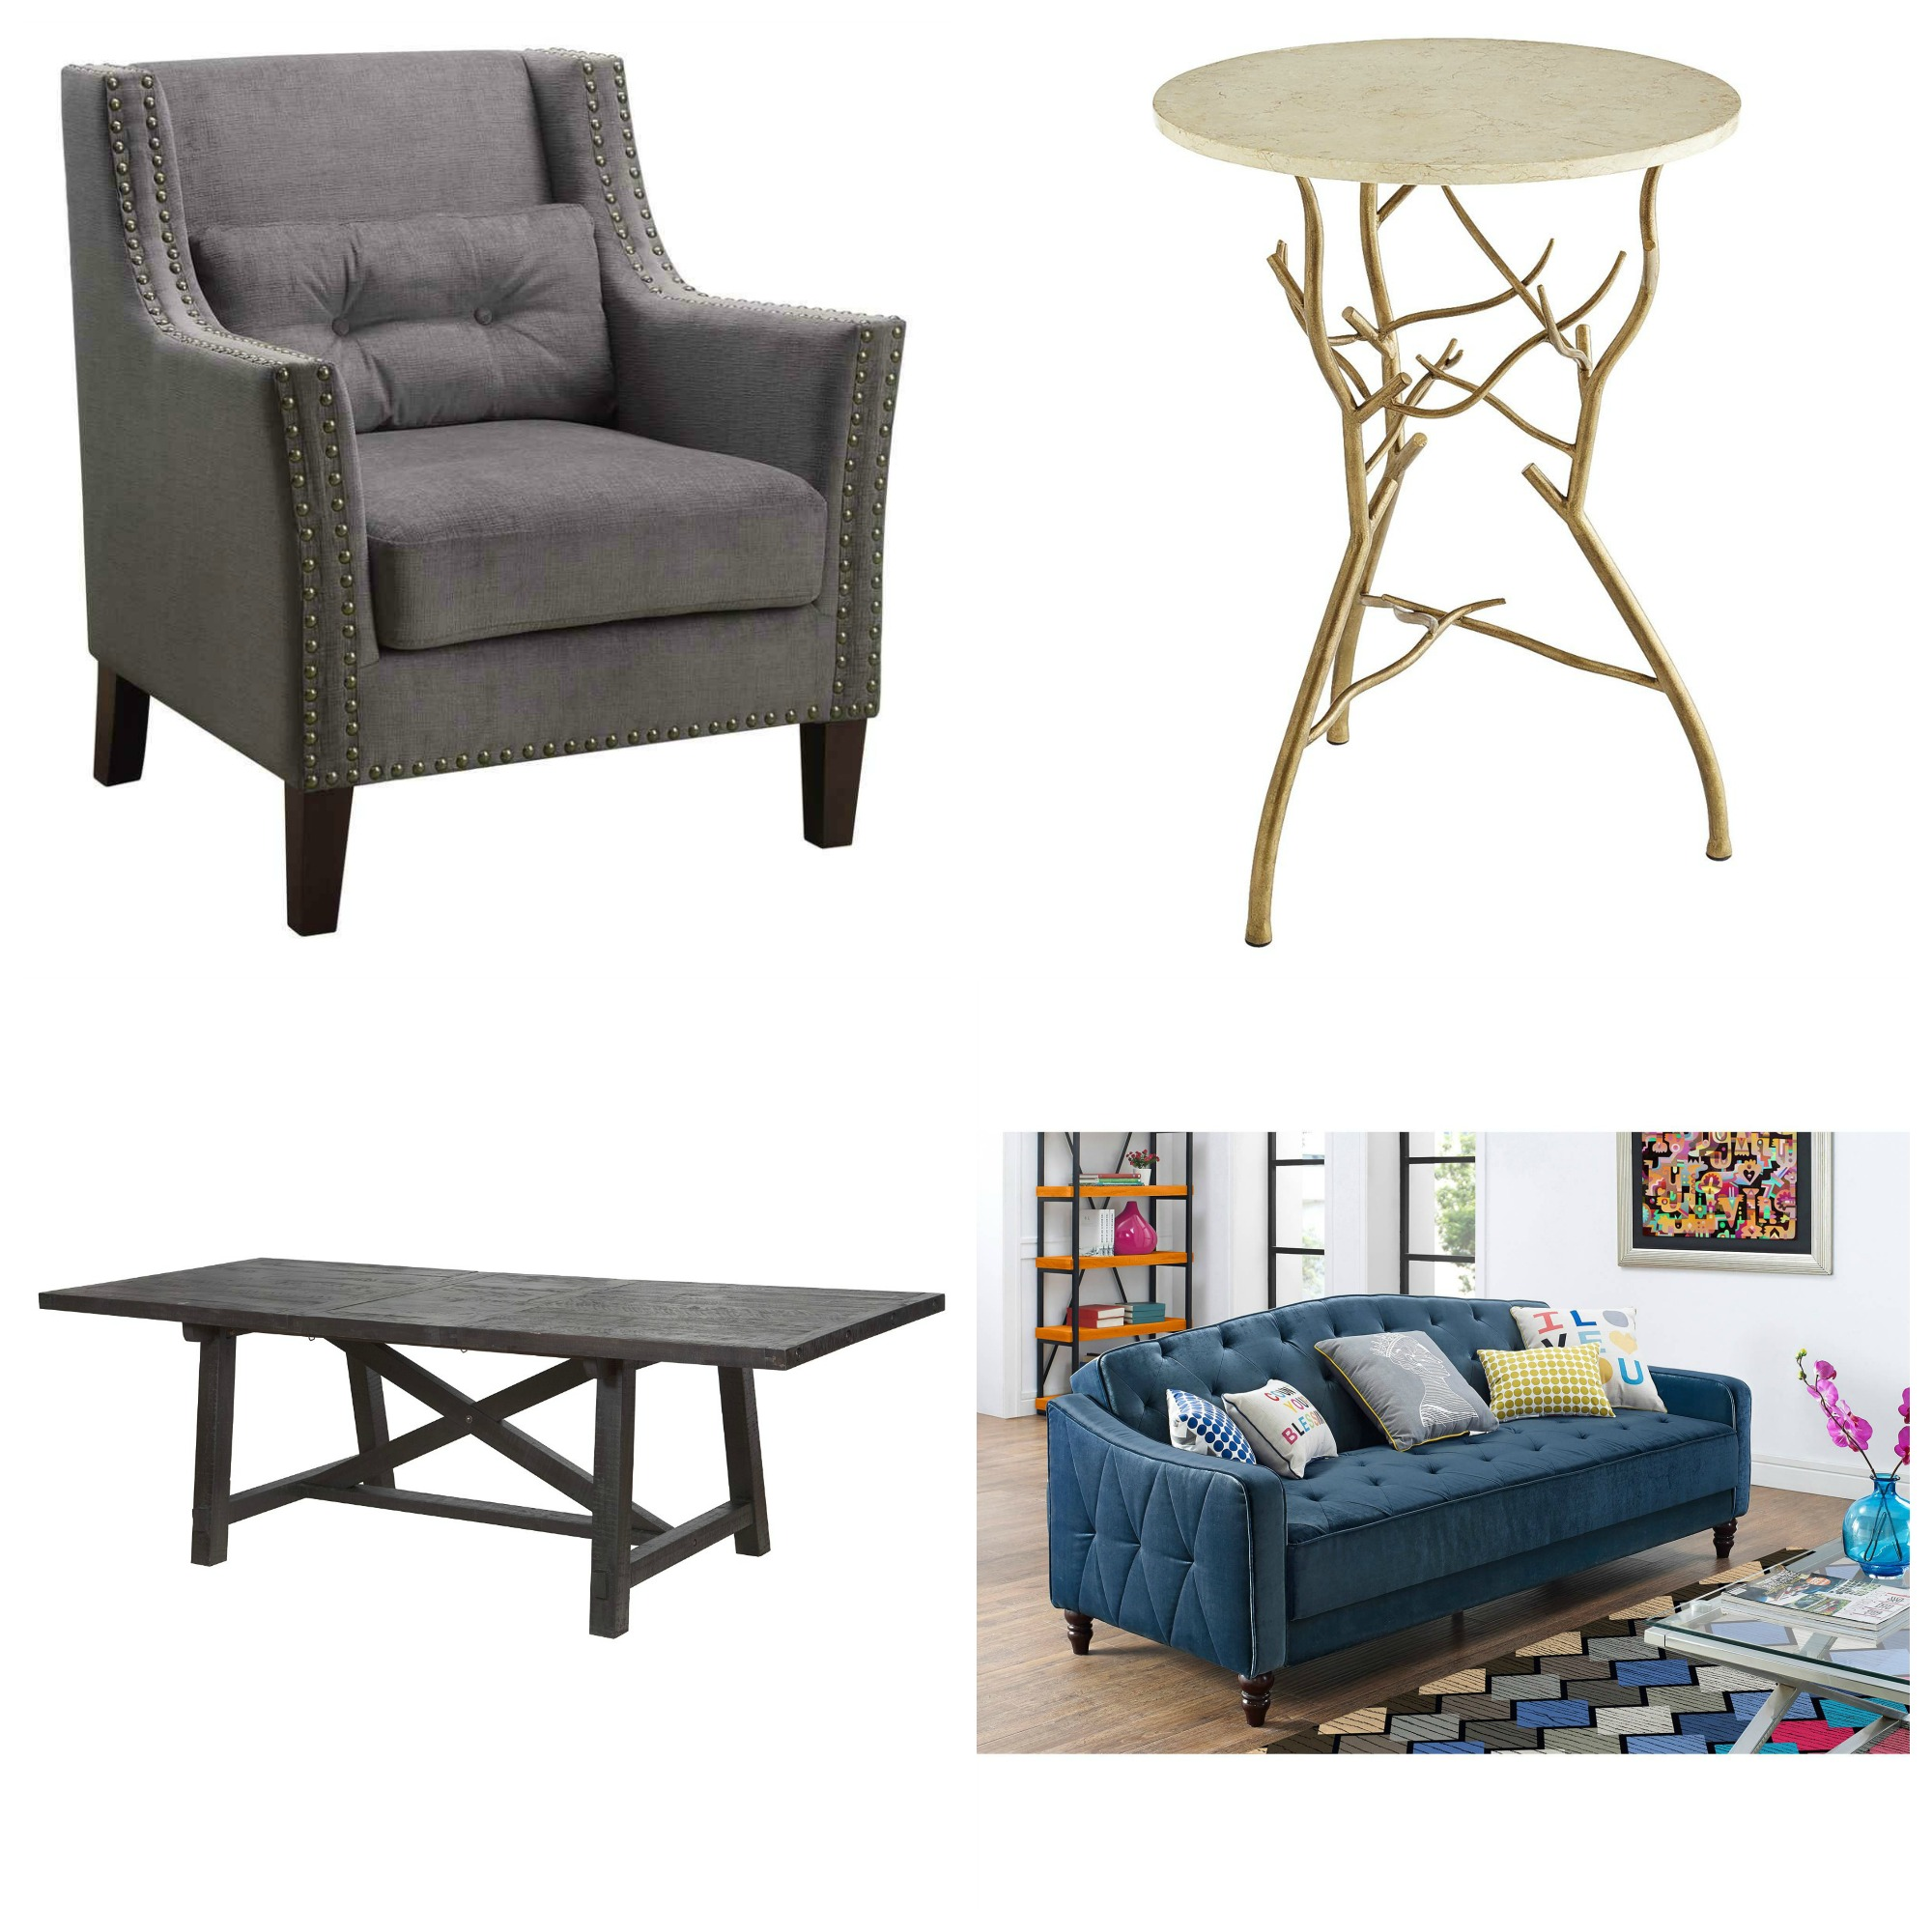 furniture gift list